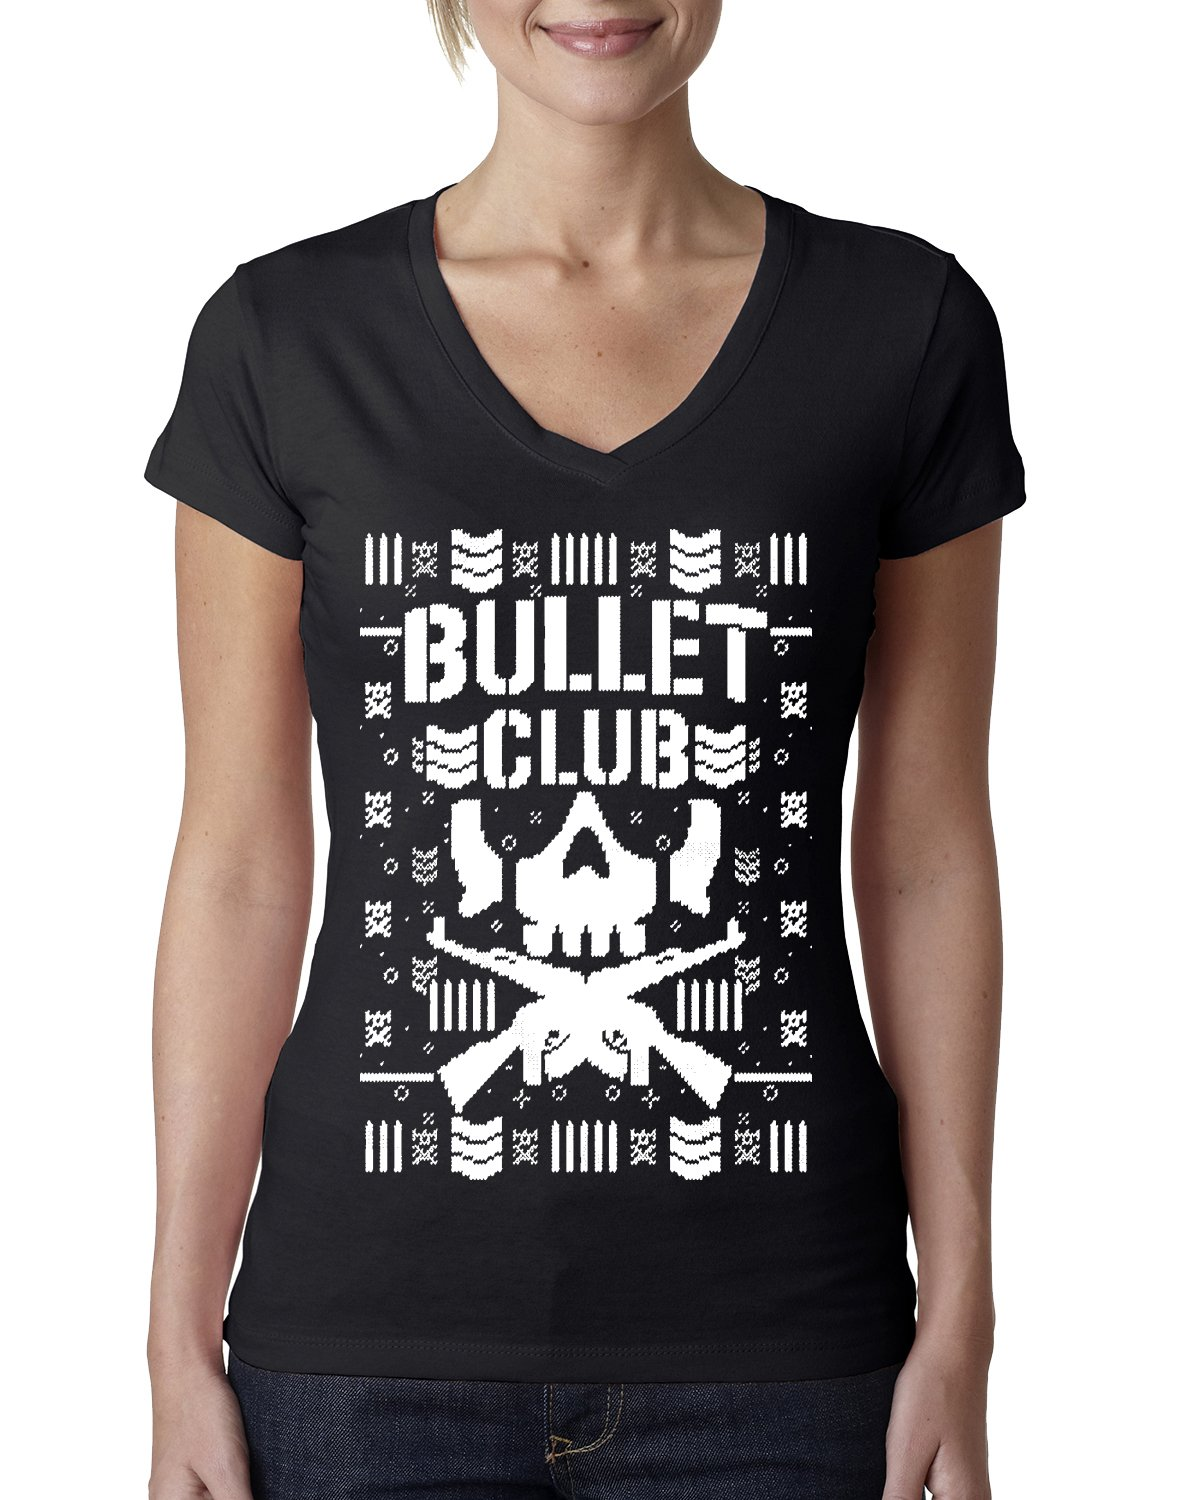 Wild Bobby Bullet Club | Wrestling Bone Soldier | Womens Ugly Christmas Junior Fit V-Neck Tee Graphic T-Shirt, Black, Small